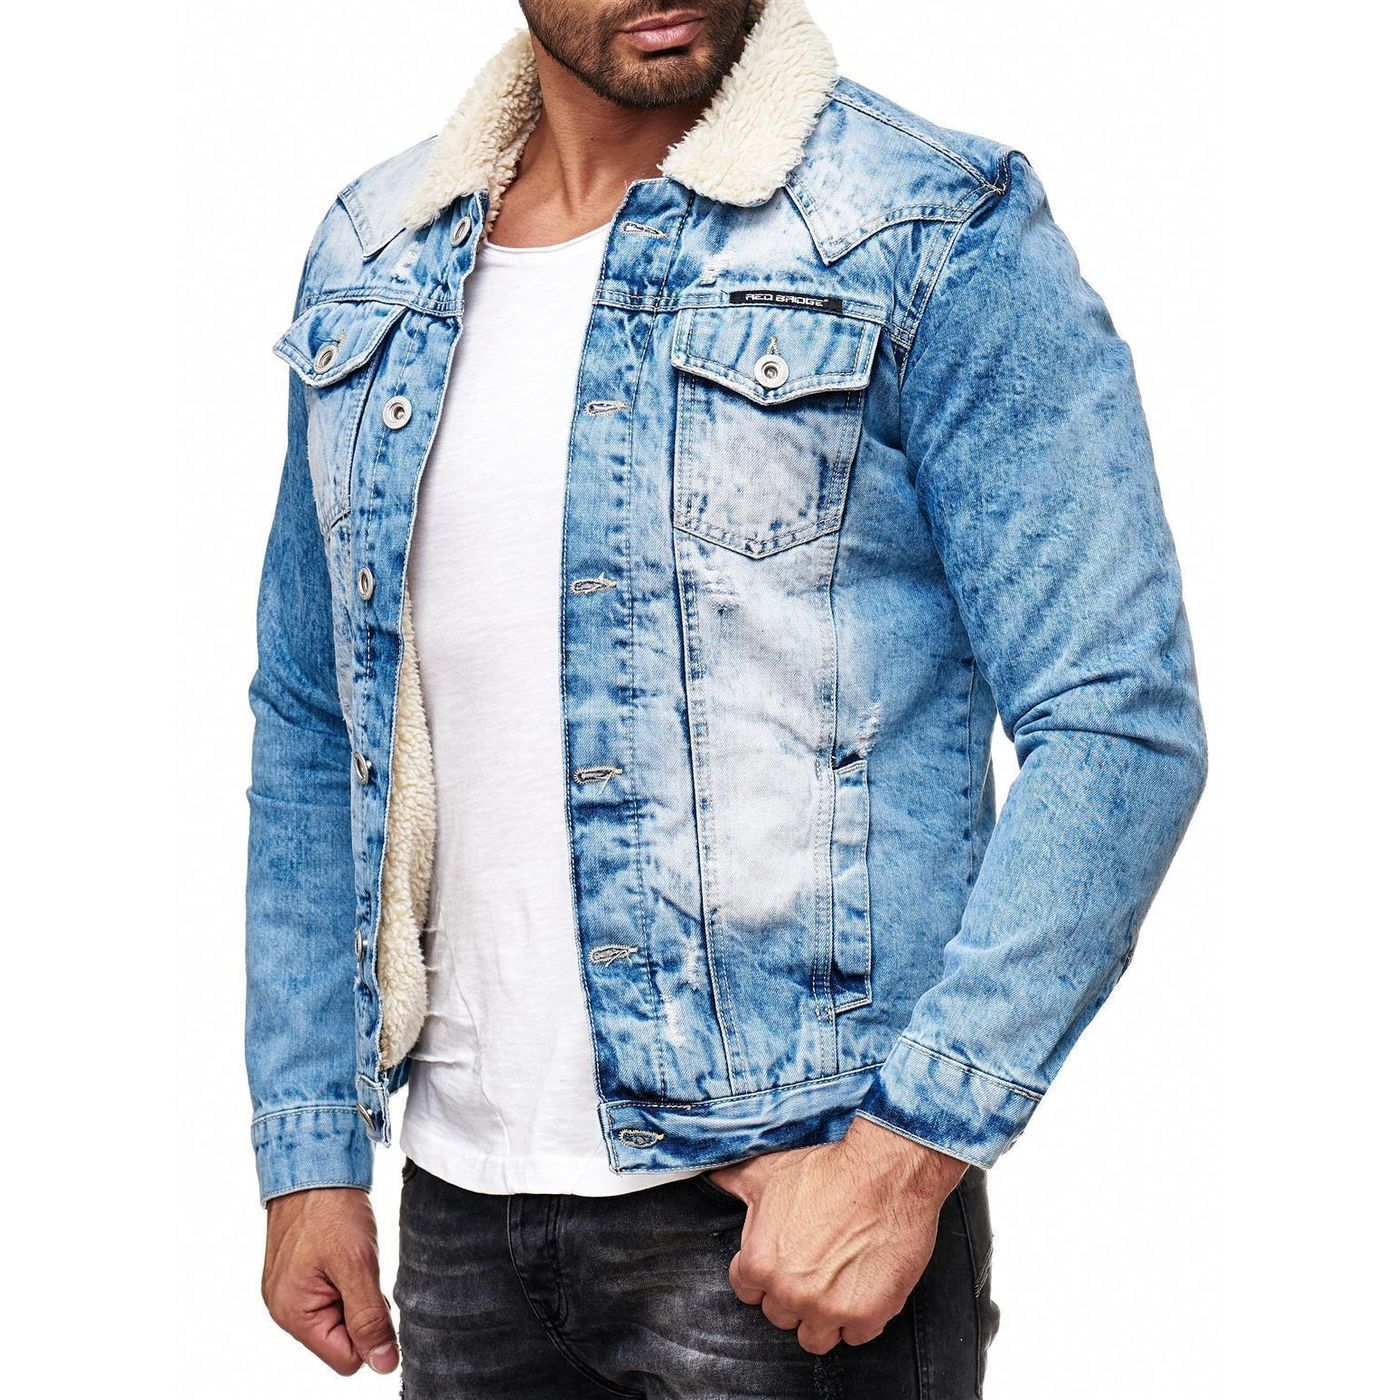 red bridge herren jeansjacke trucker sherpa denim rbc jeansjacke gef 64 99